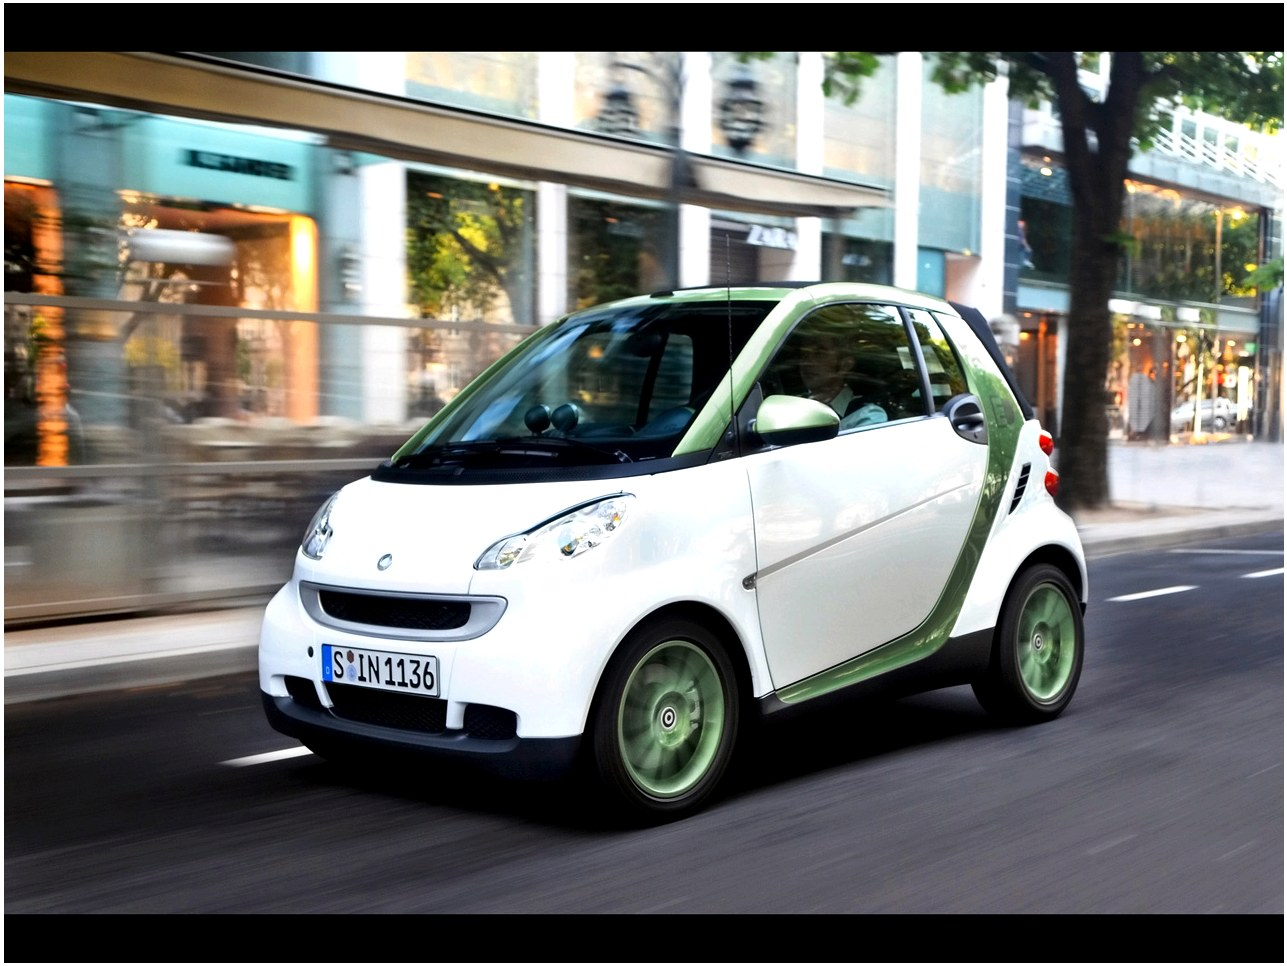 2013 Smart fortwo electric drive photo - 2